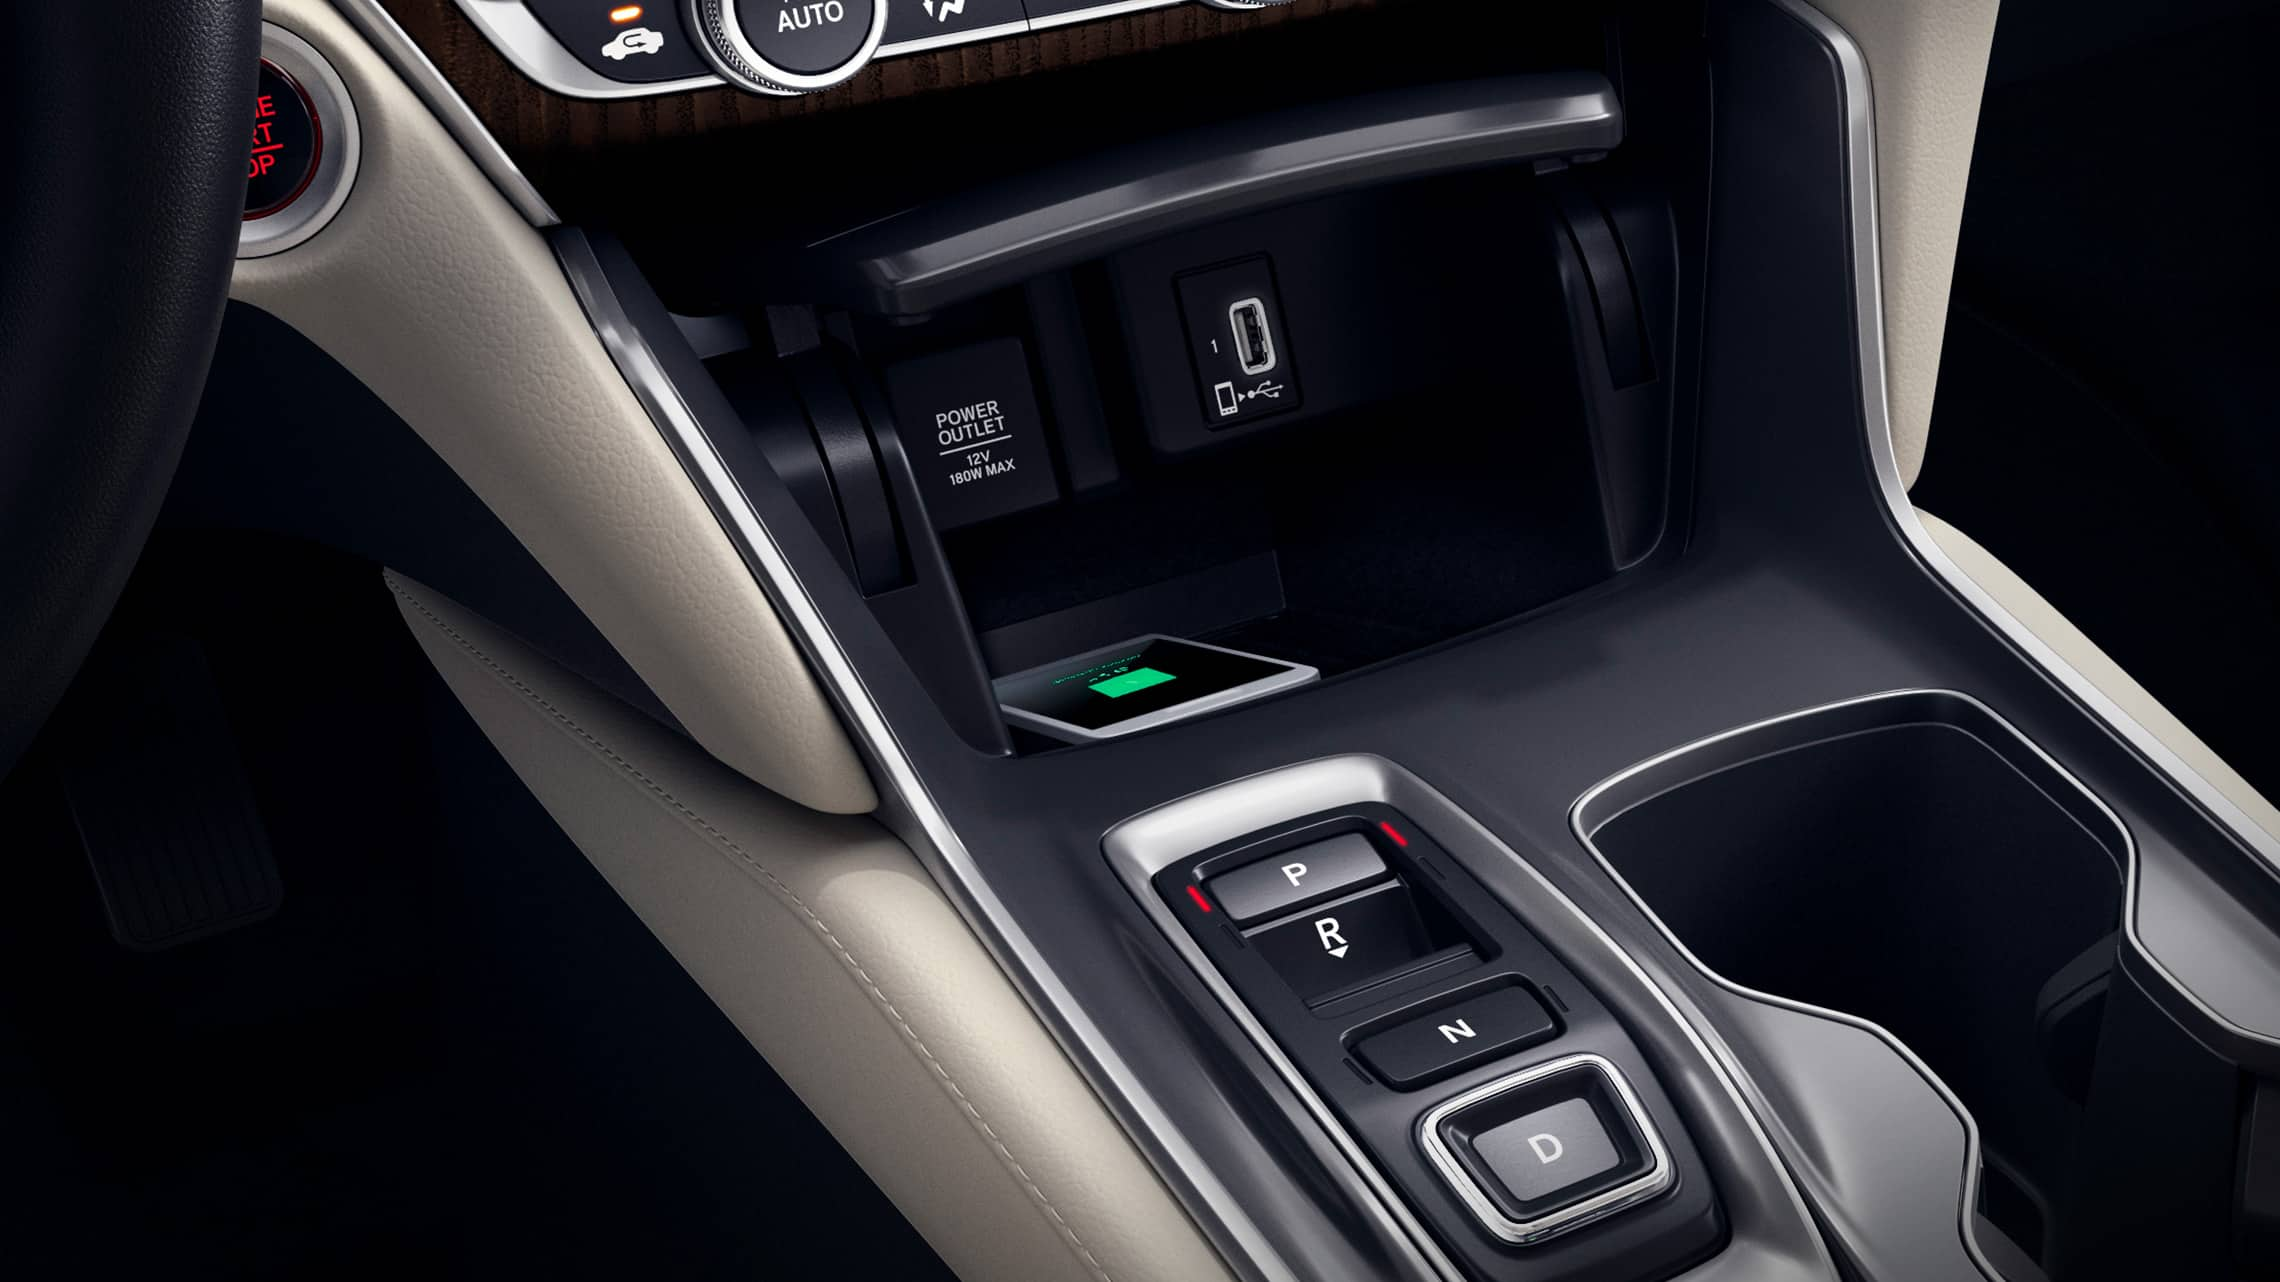 Wireless phone charger detail in the 2020 Honda Accord Touring 2.0T with Ivory Leather.